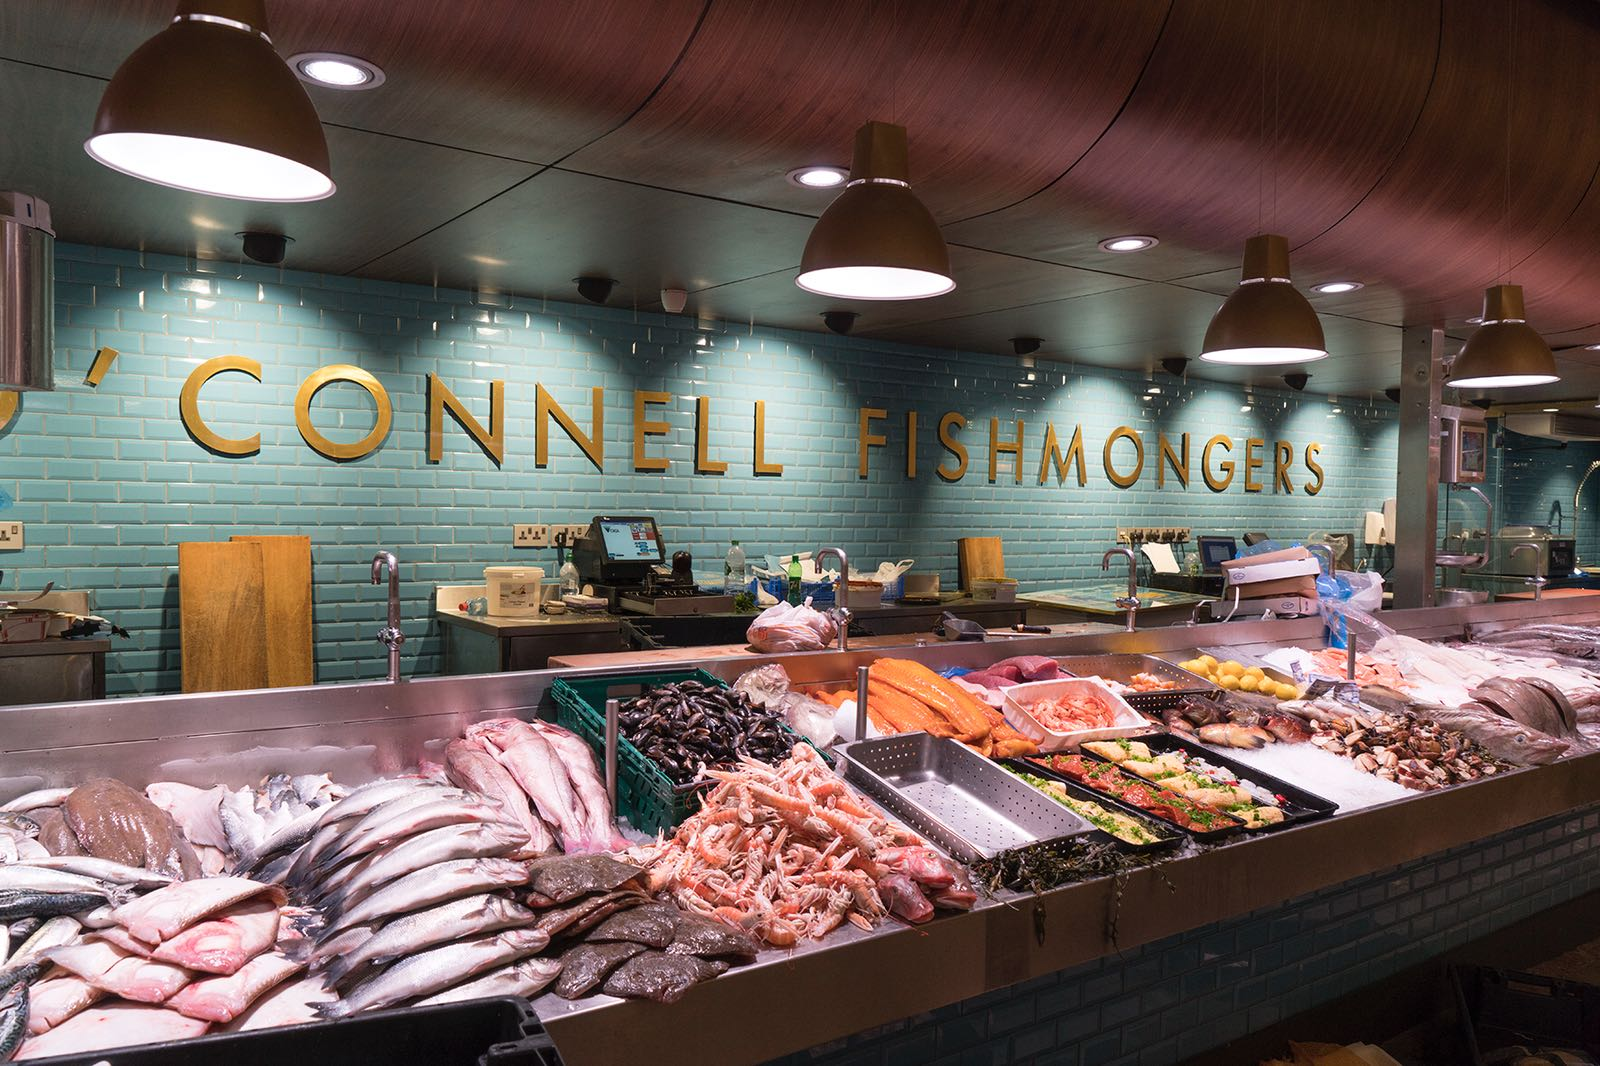 O'Connell Fishmongers at The English Market in Cork city, Ireland.